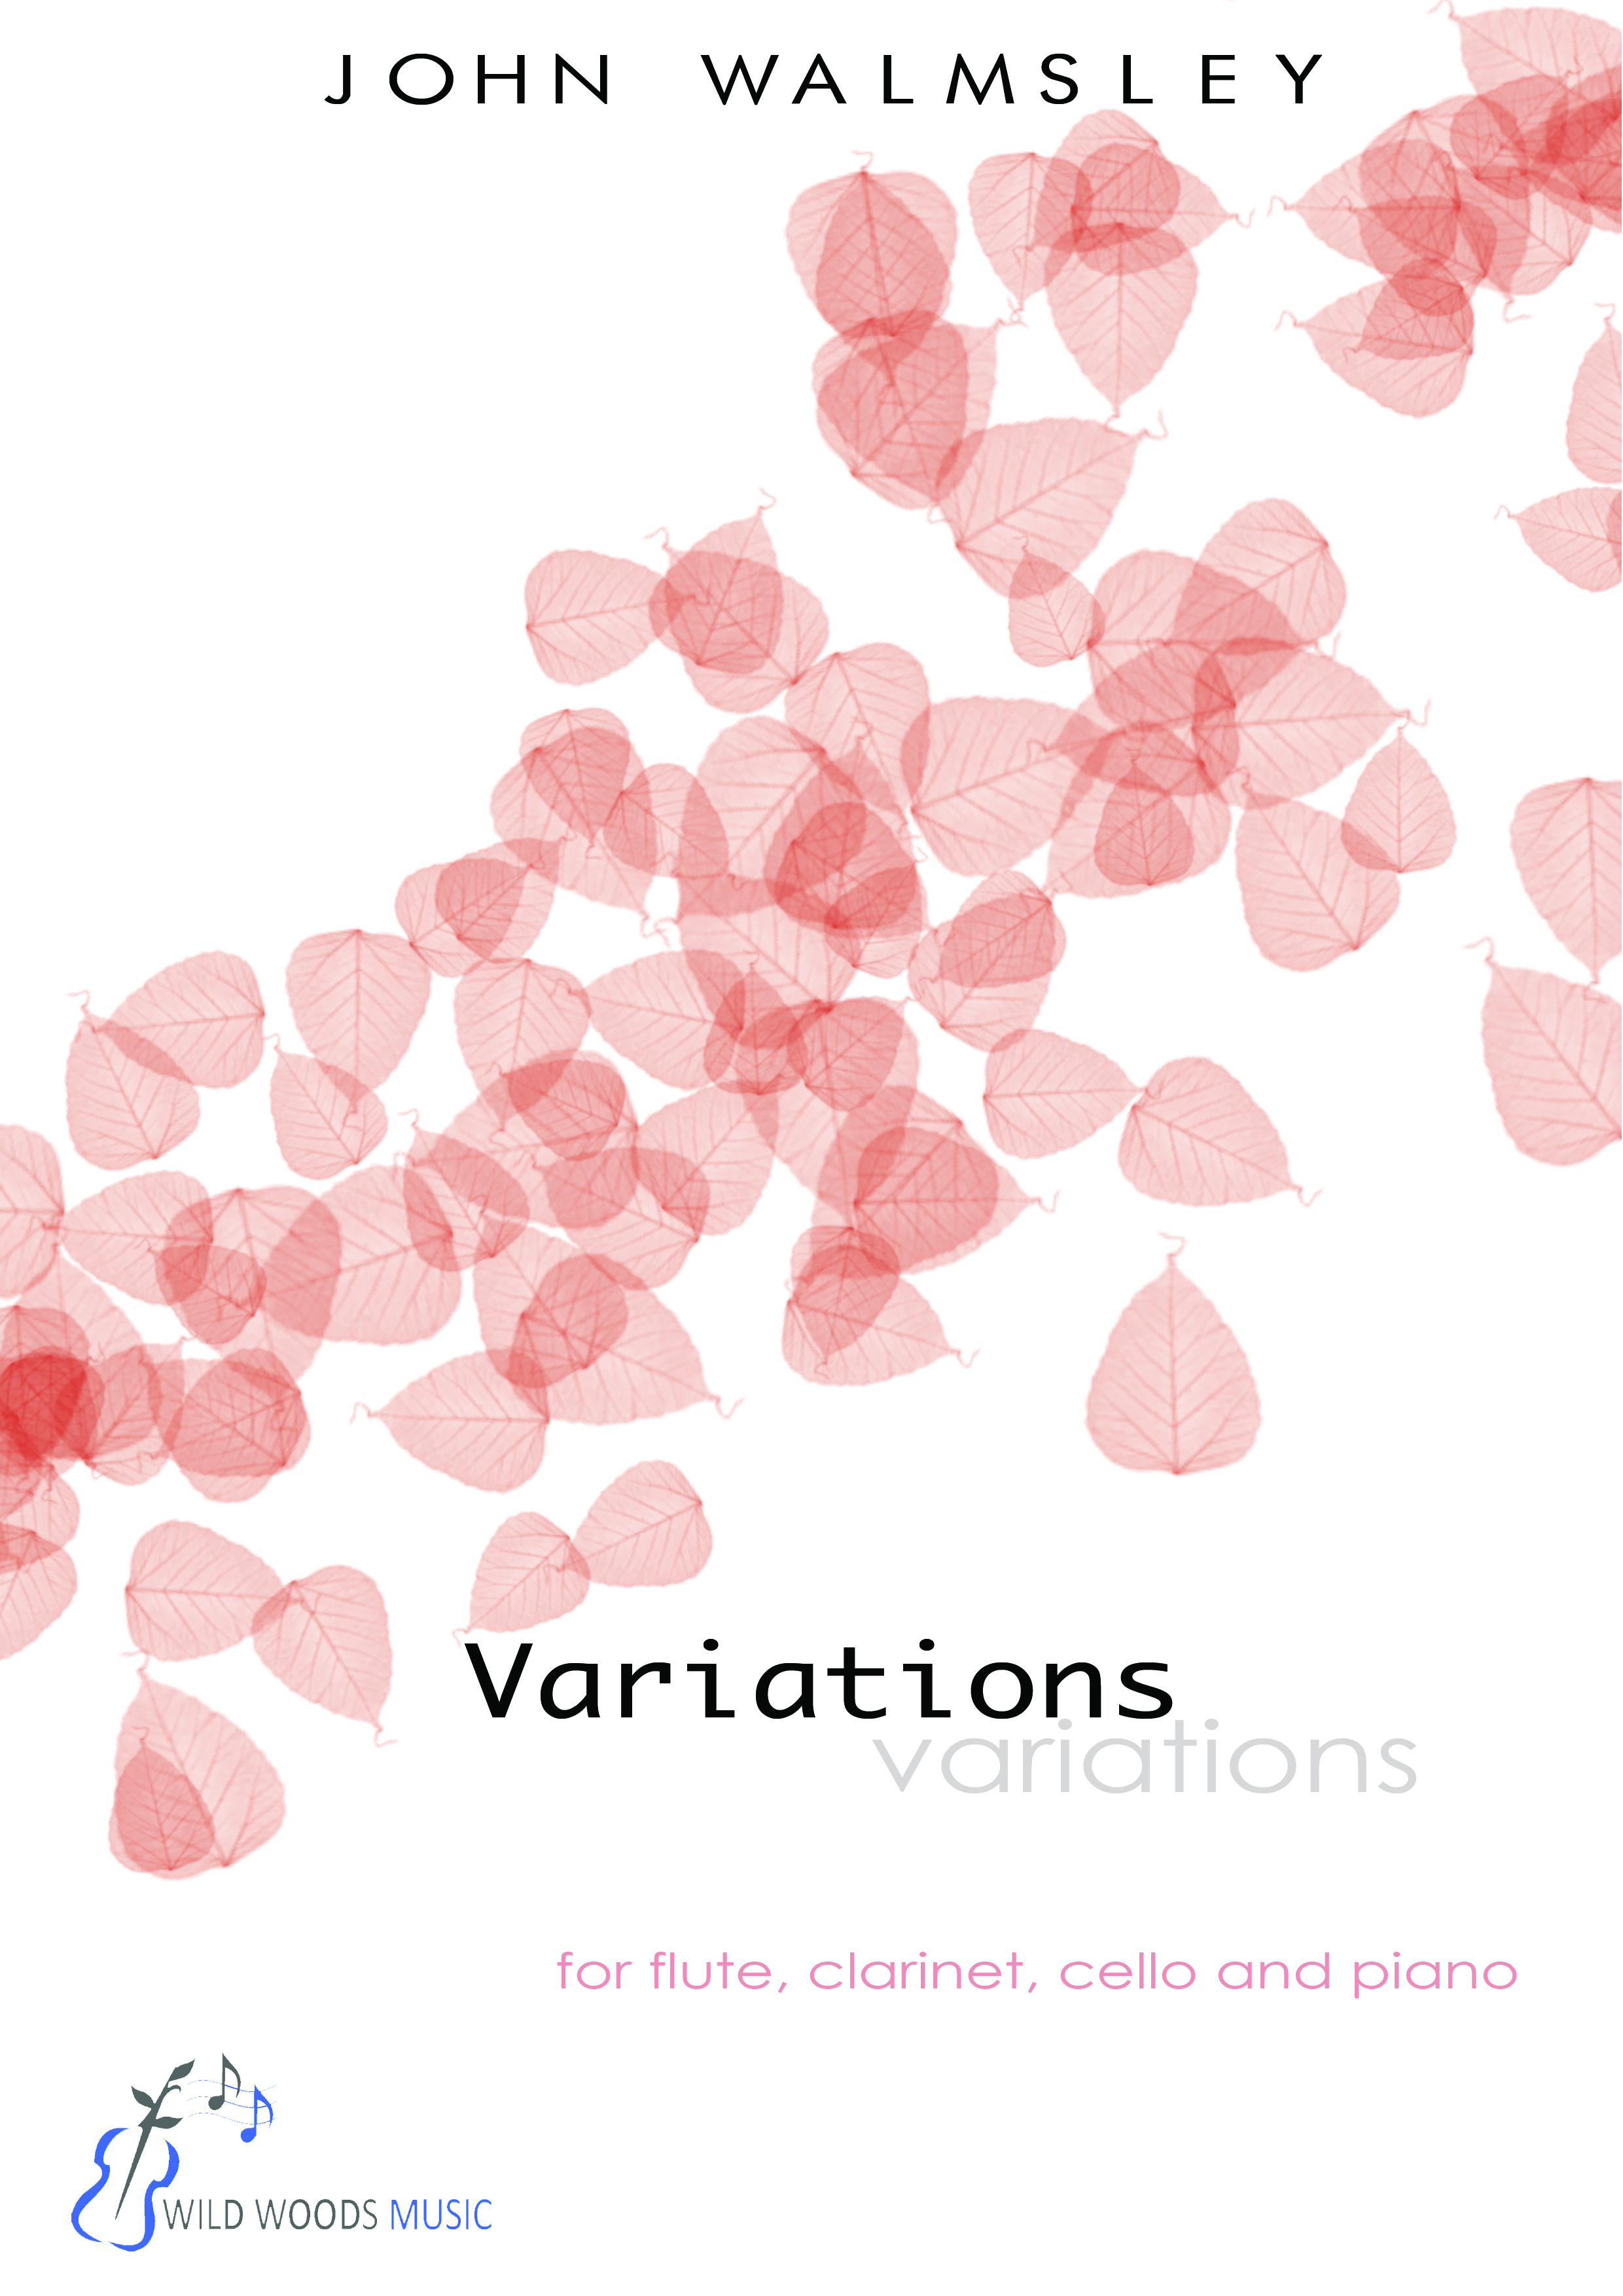 Variations - by John Walmsley, for flute, clarinet, cello and piano